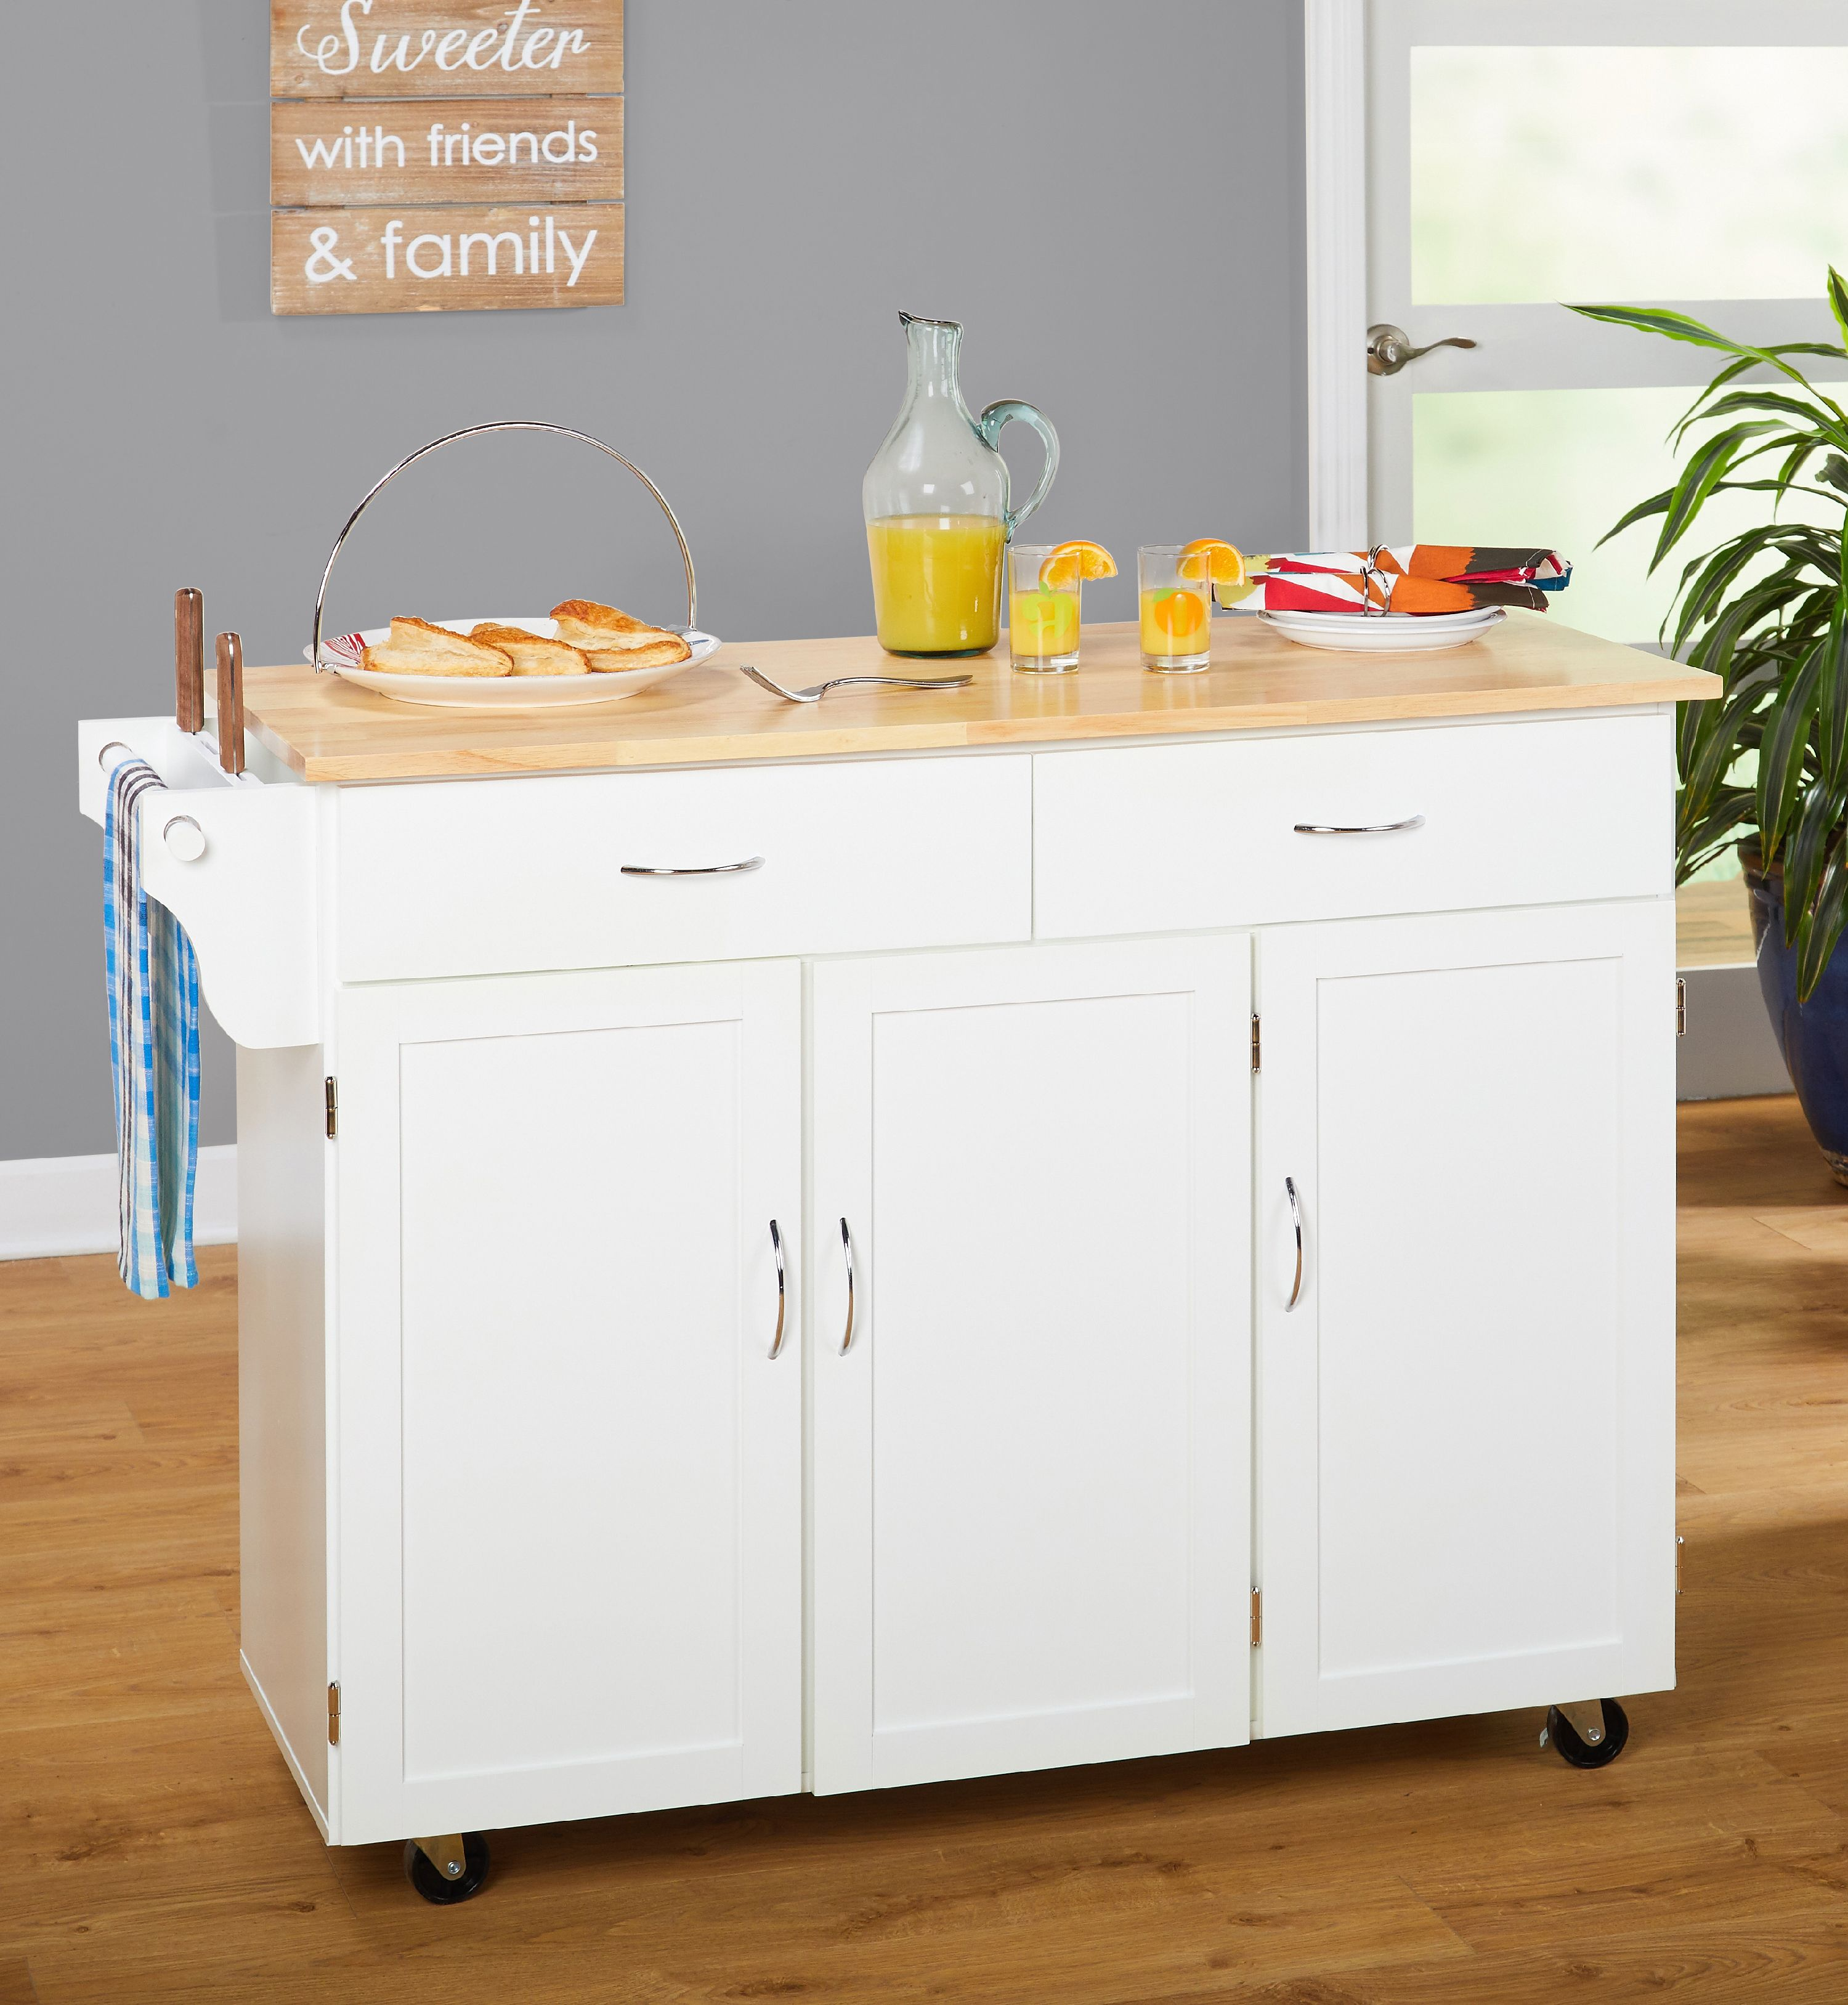 Extra Large Kitchen Cart, White with Wood Top (Box 1 of 2)